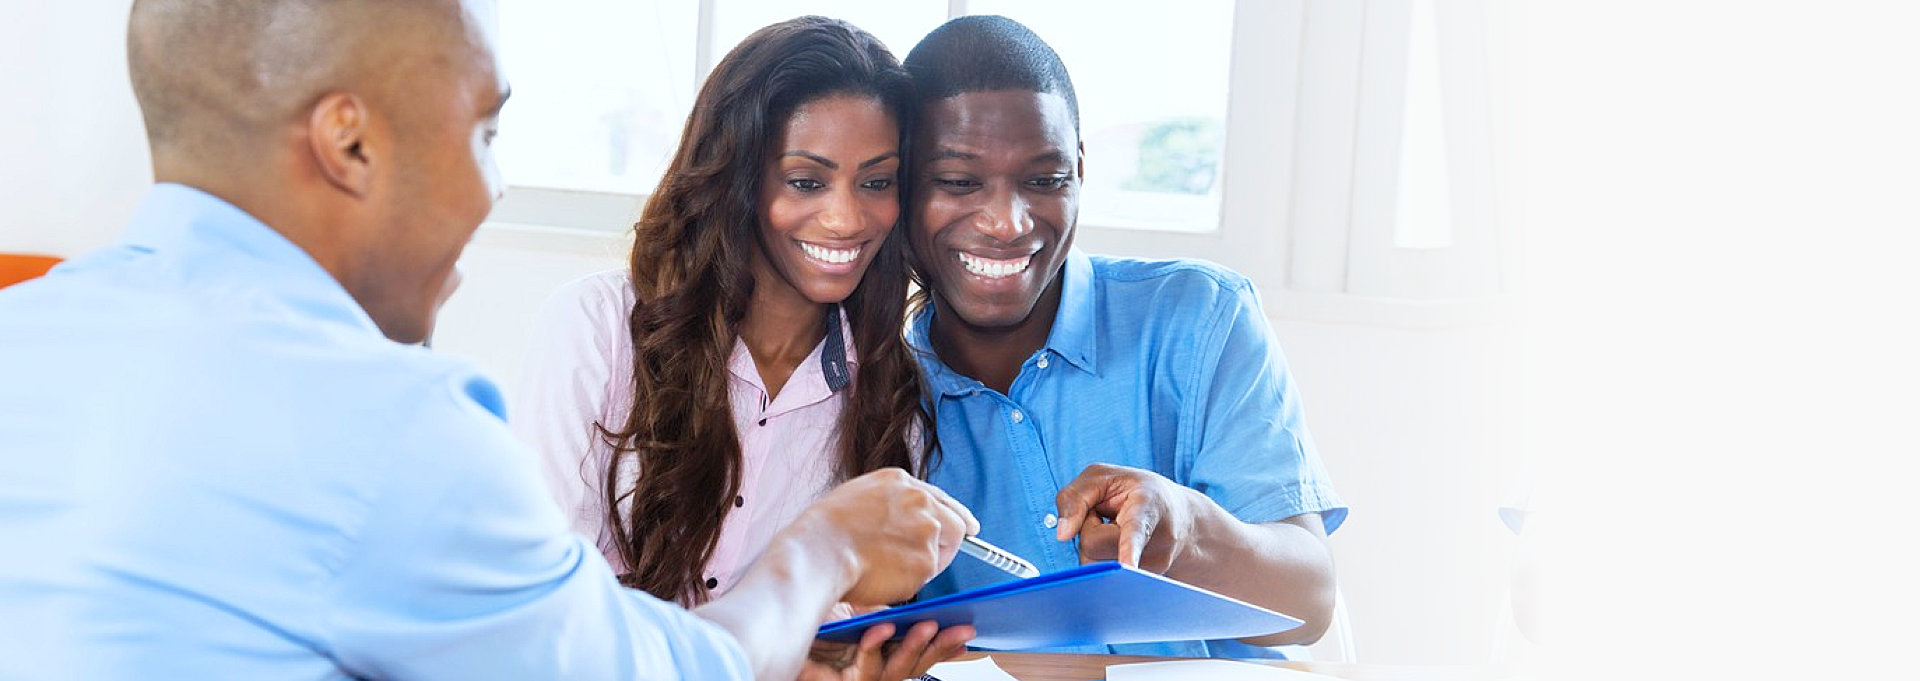 man shows papers to couple